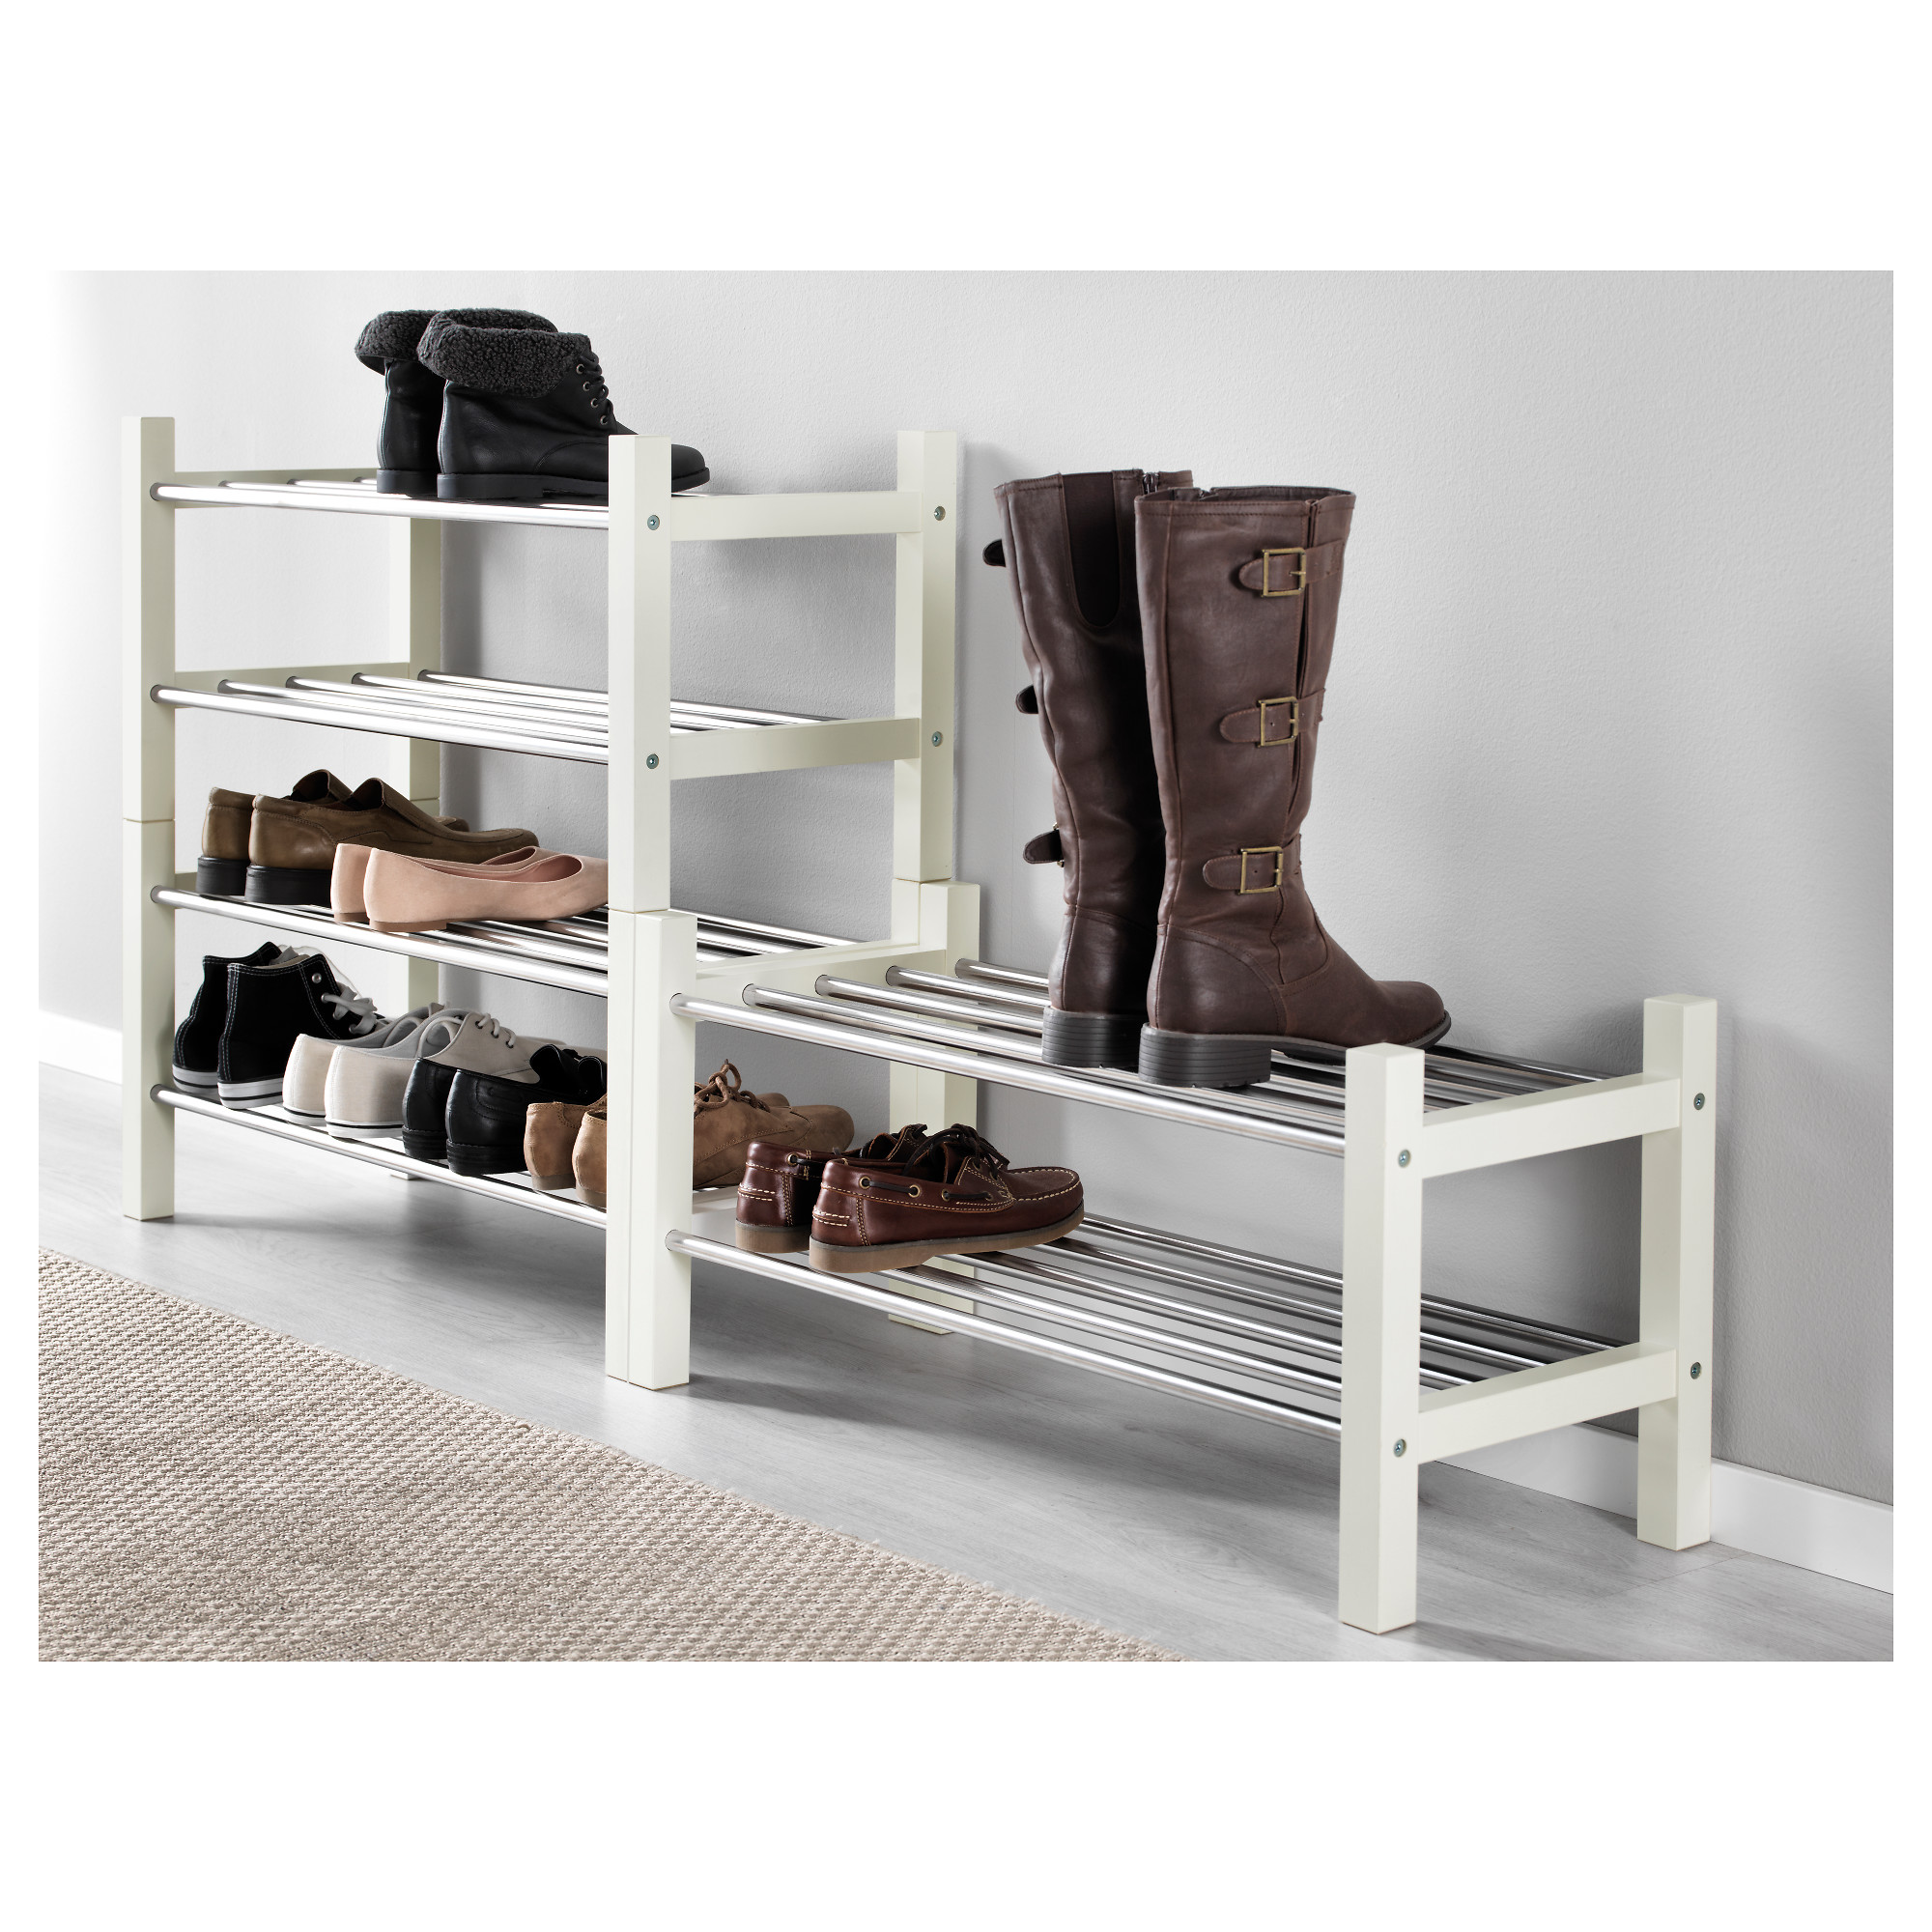 tjusig shoe rack ikea - Shoe Rack Ikea